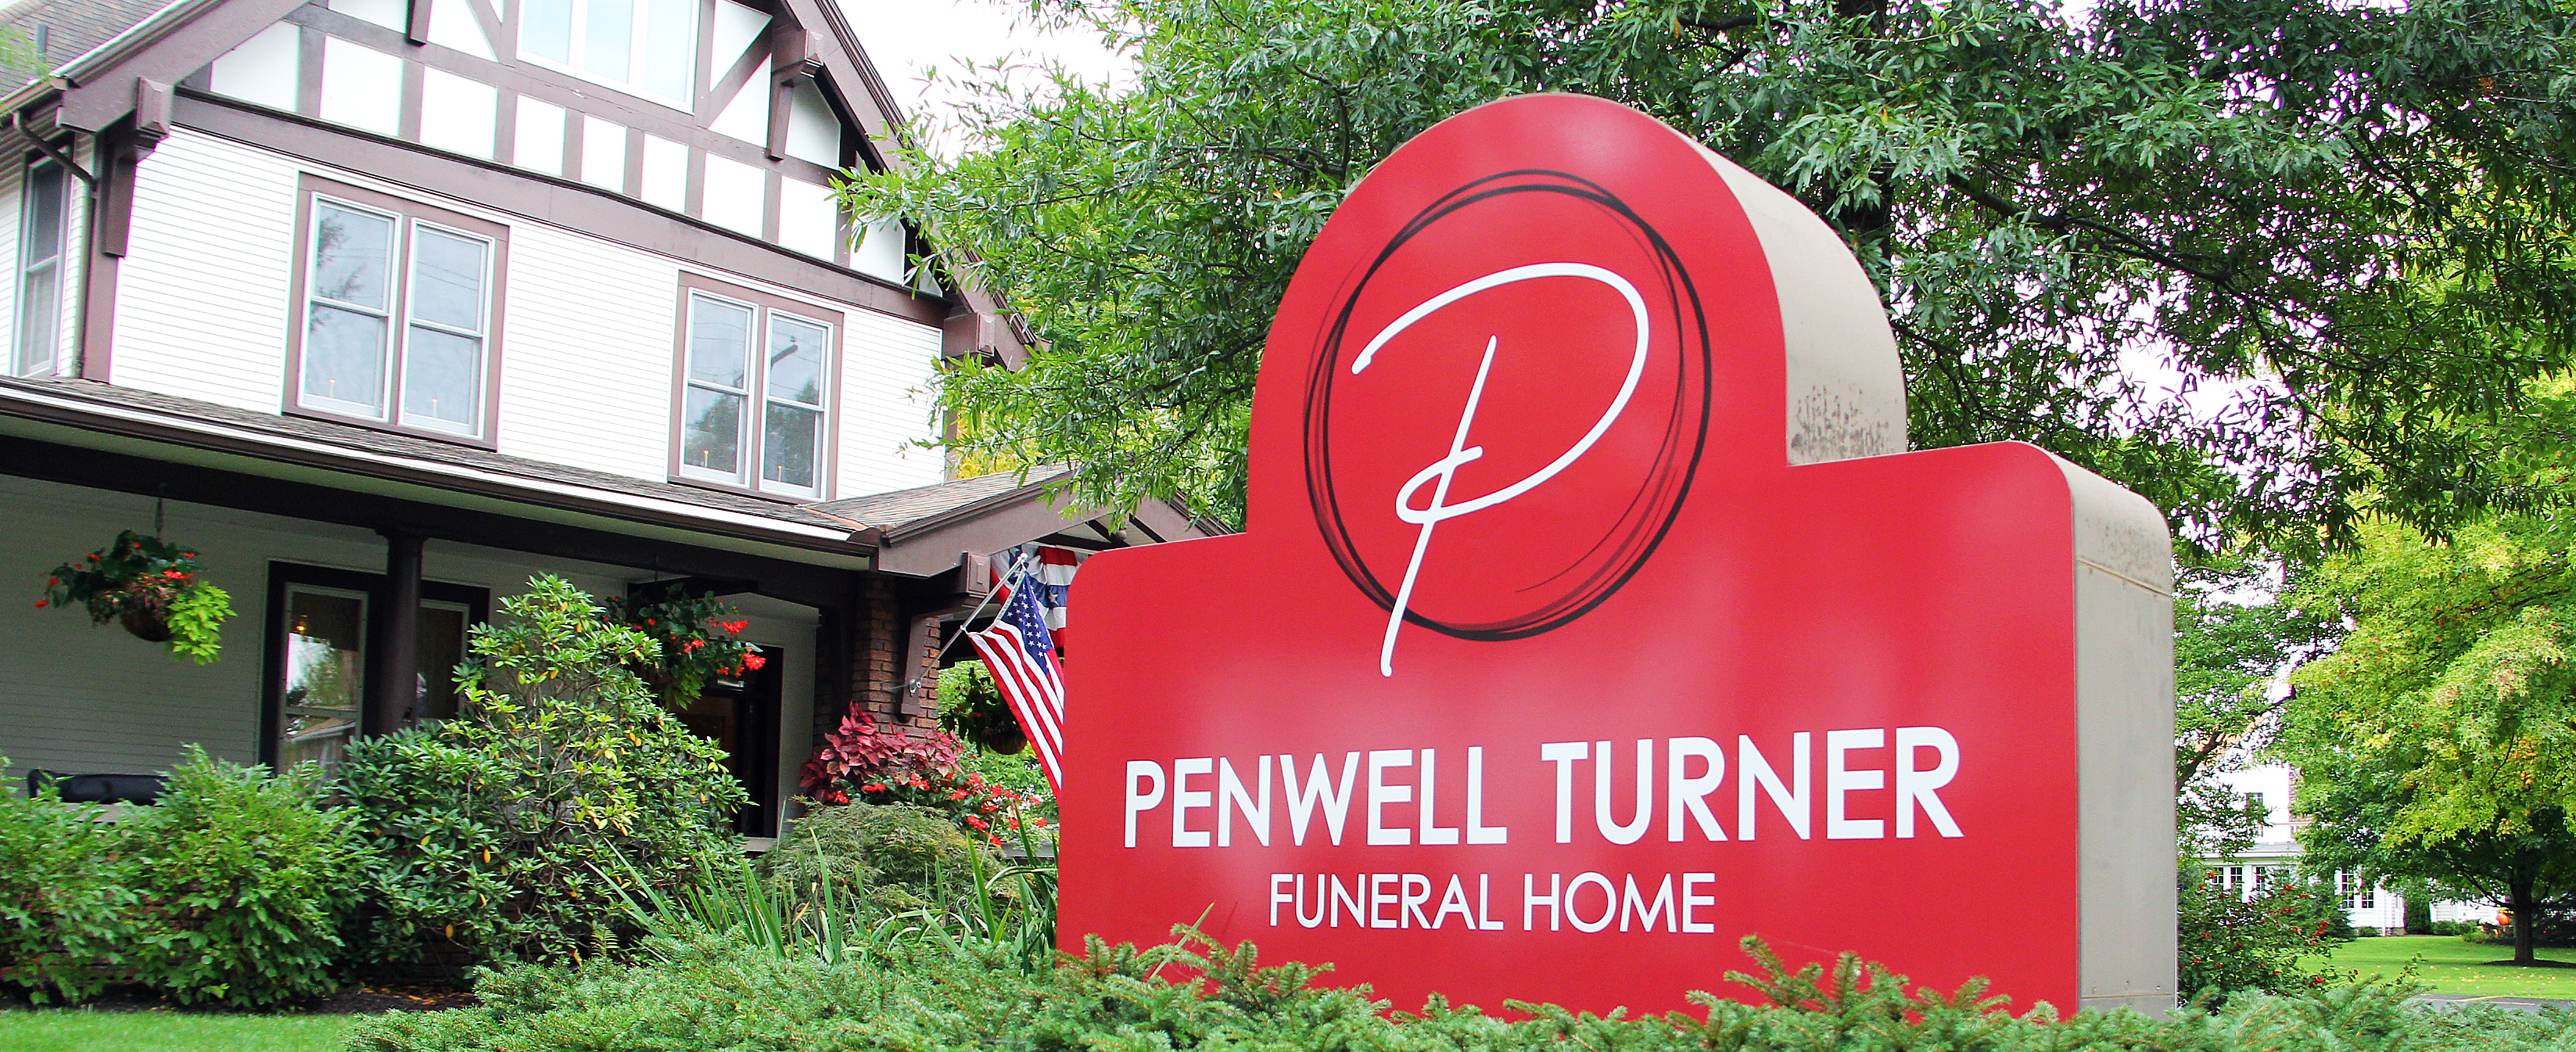 Penwell Turner Funeral Home - Shelby, Ohio